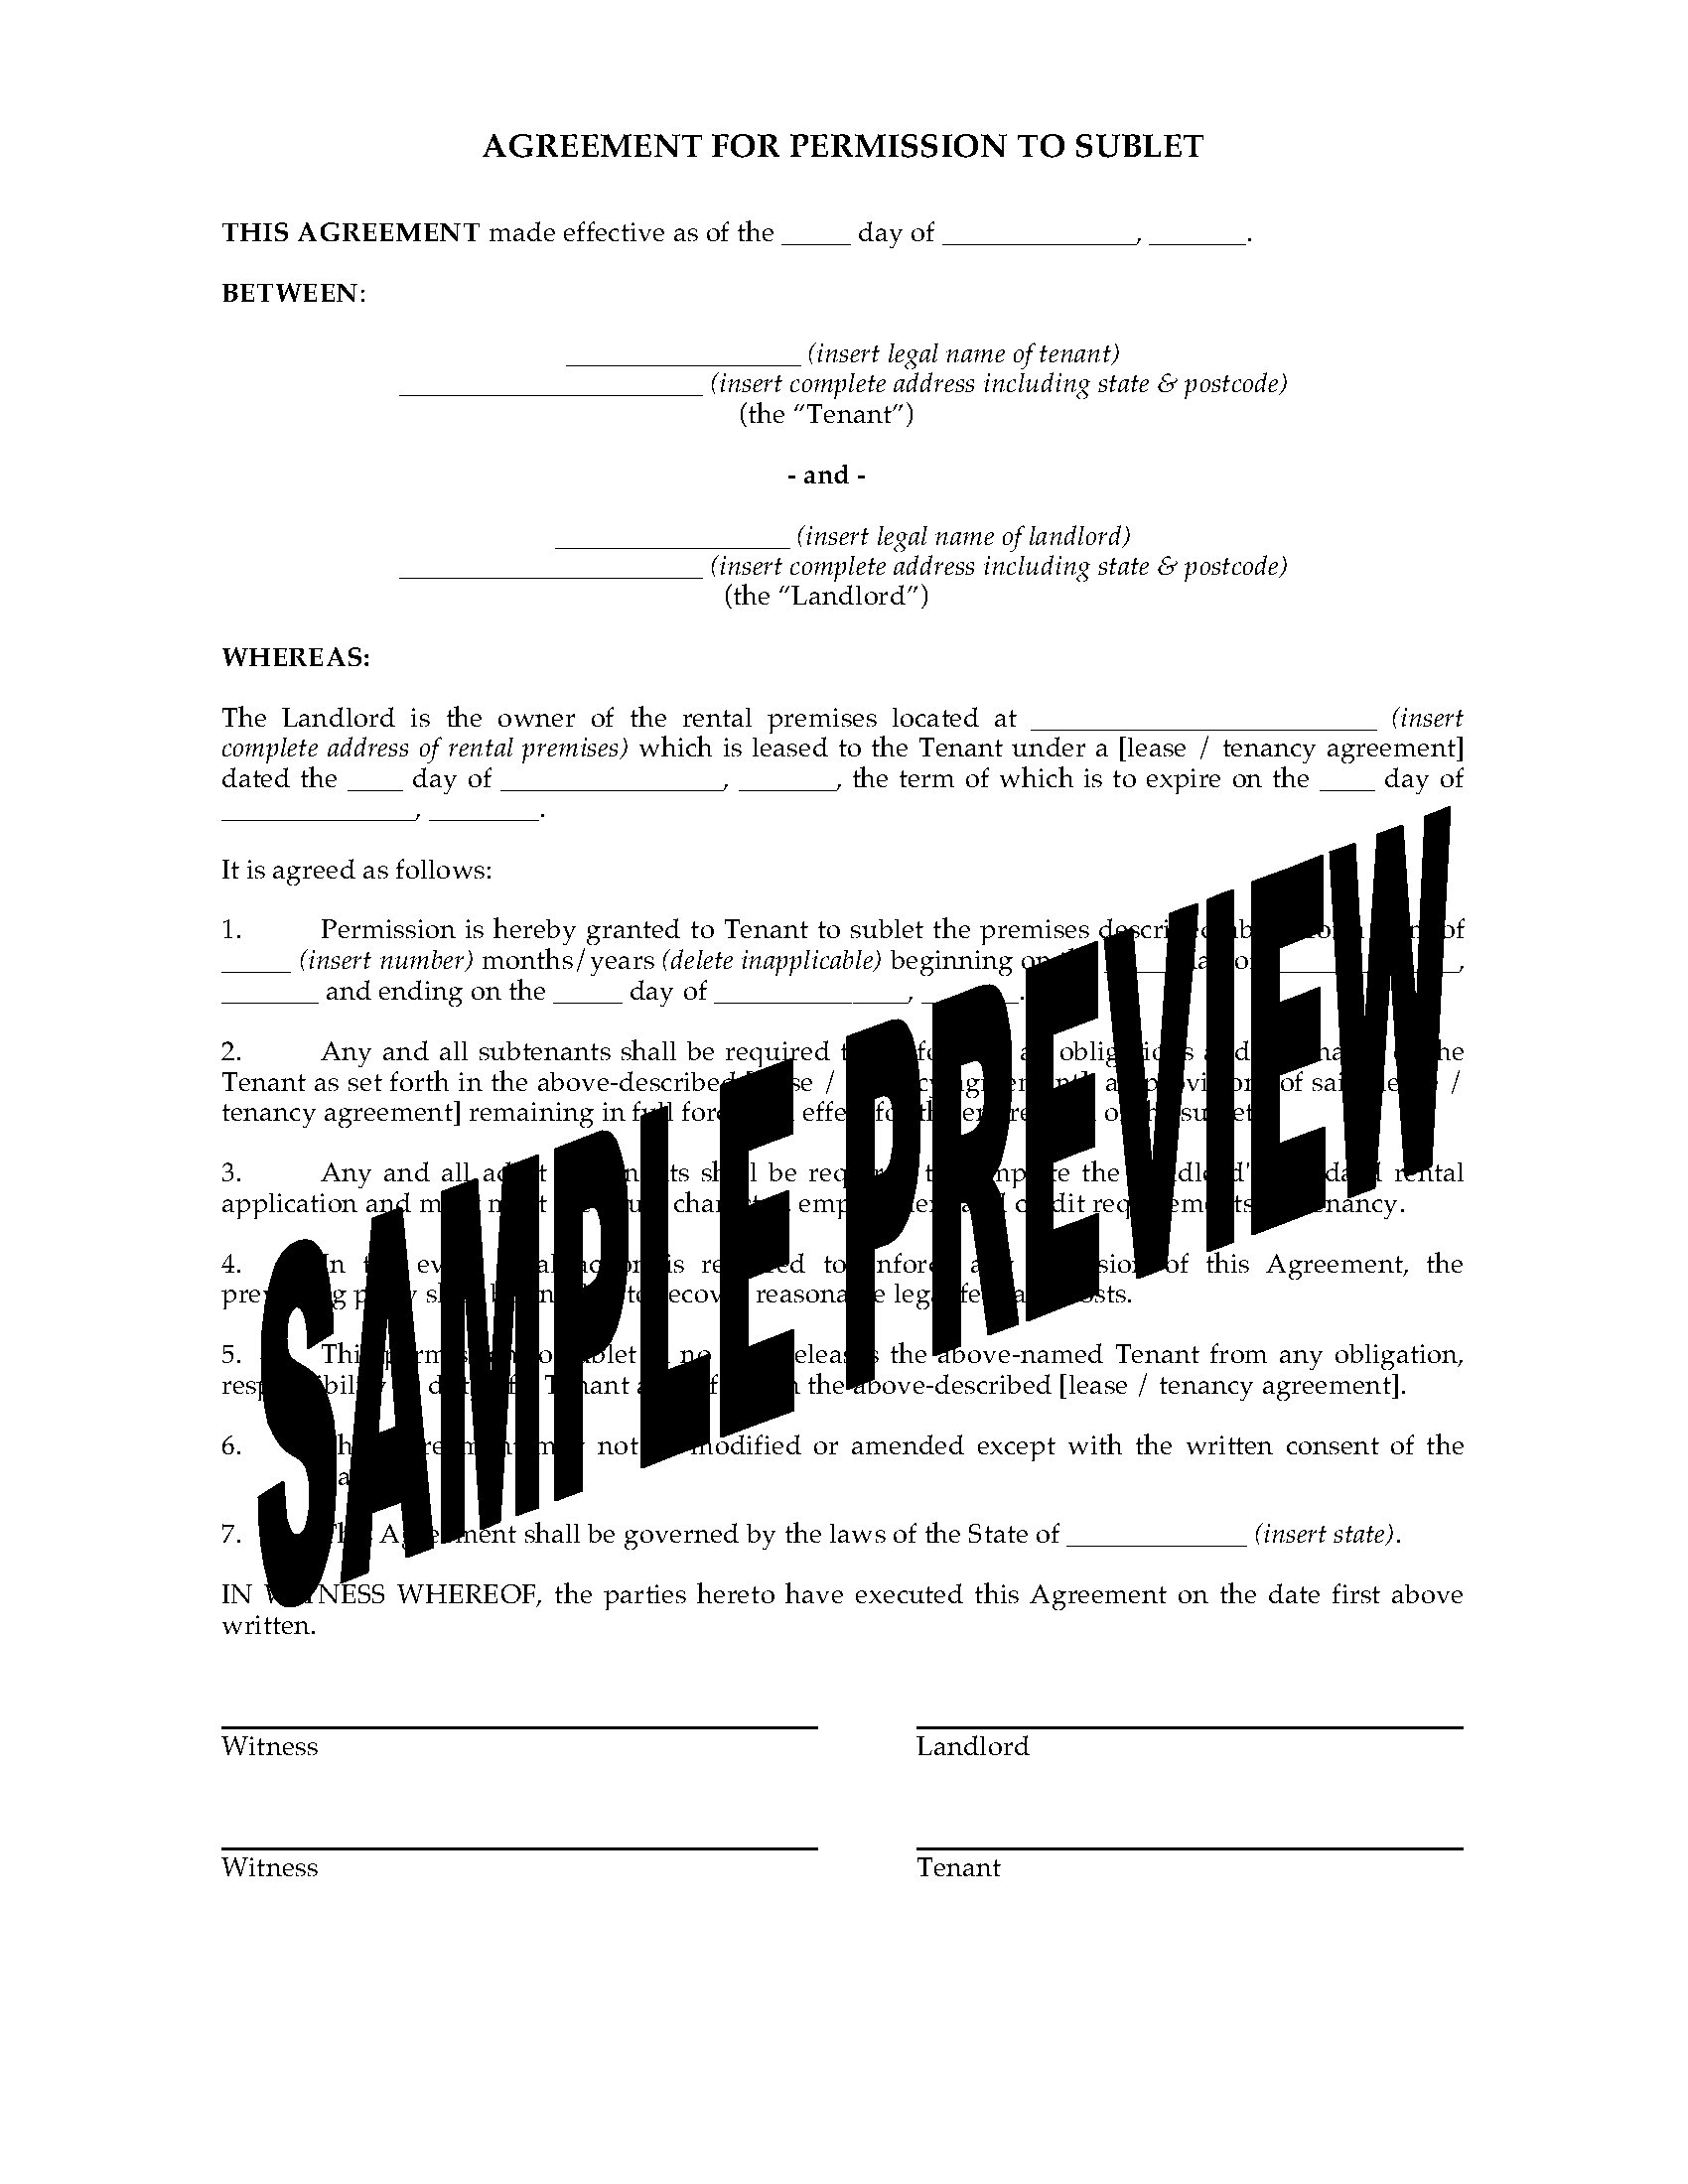 South Australia Agreement For Permission To Sublet Legal Forms And